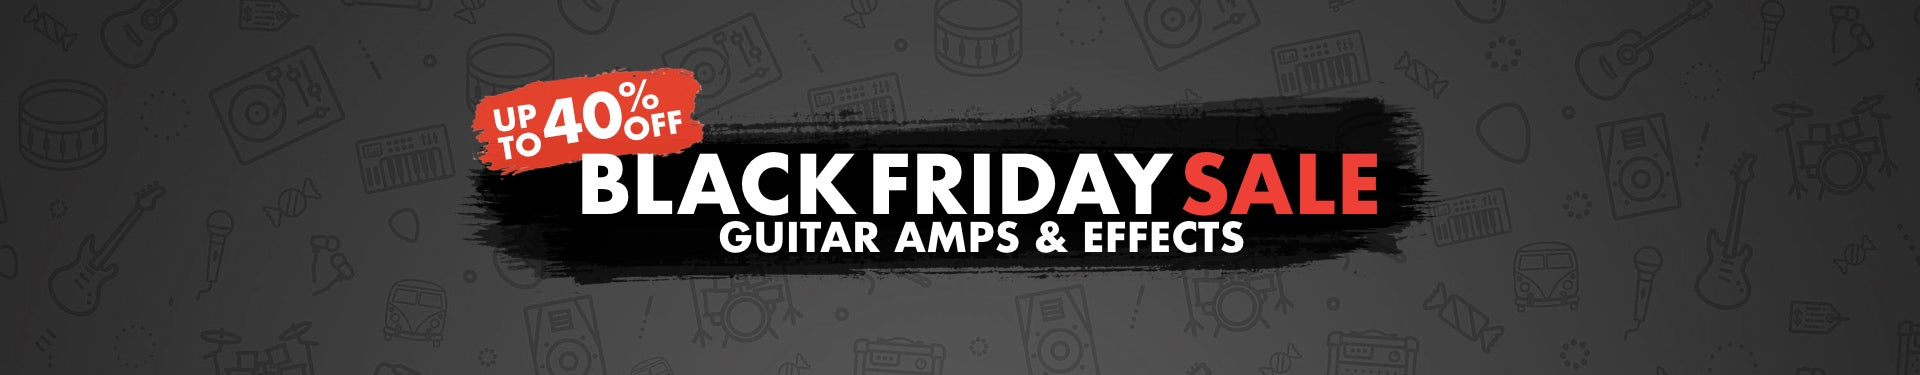 Black Friday Guitar Amps & Effects